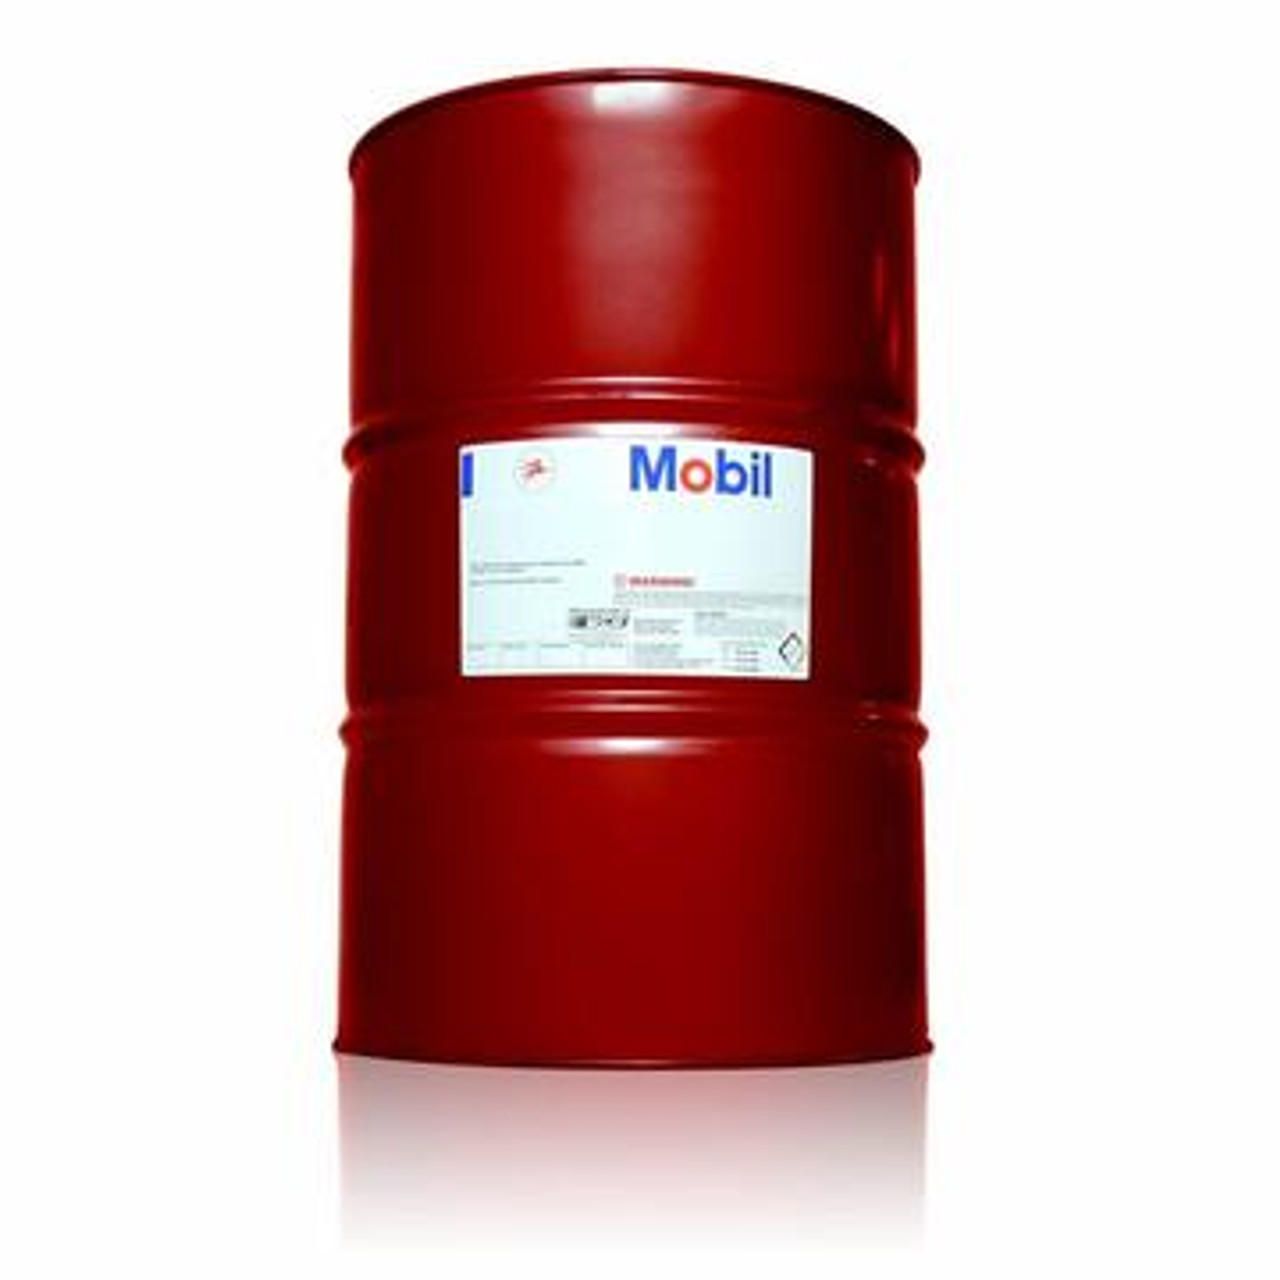 Mobil Vactra™ 3 Way and Slide Lubricant - 55 Gallon Drum